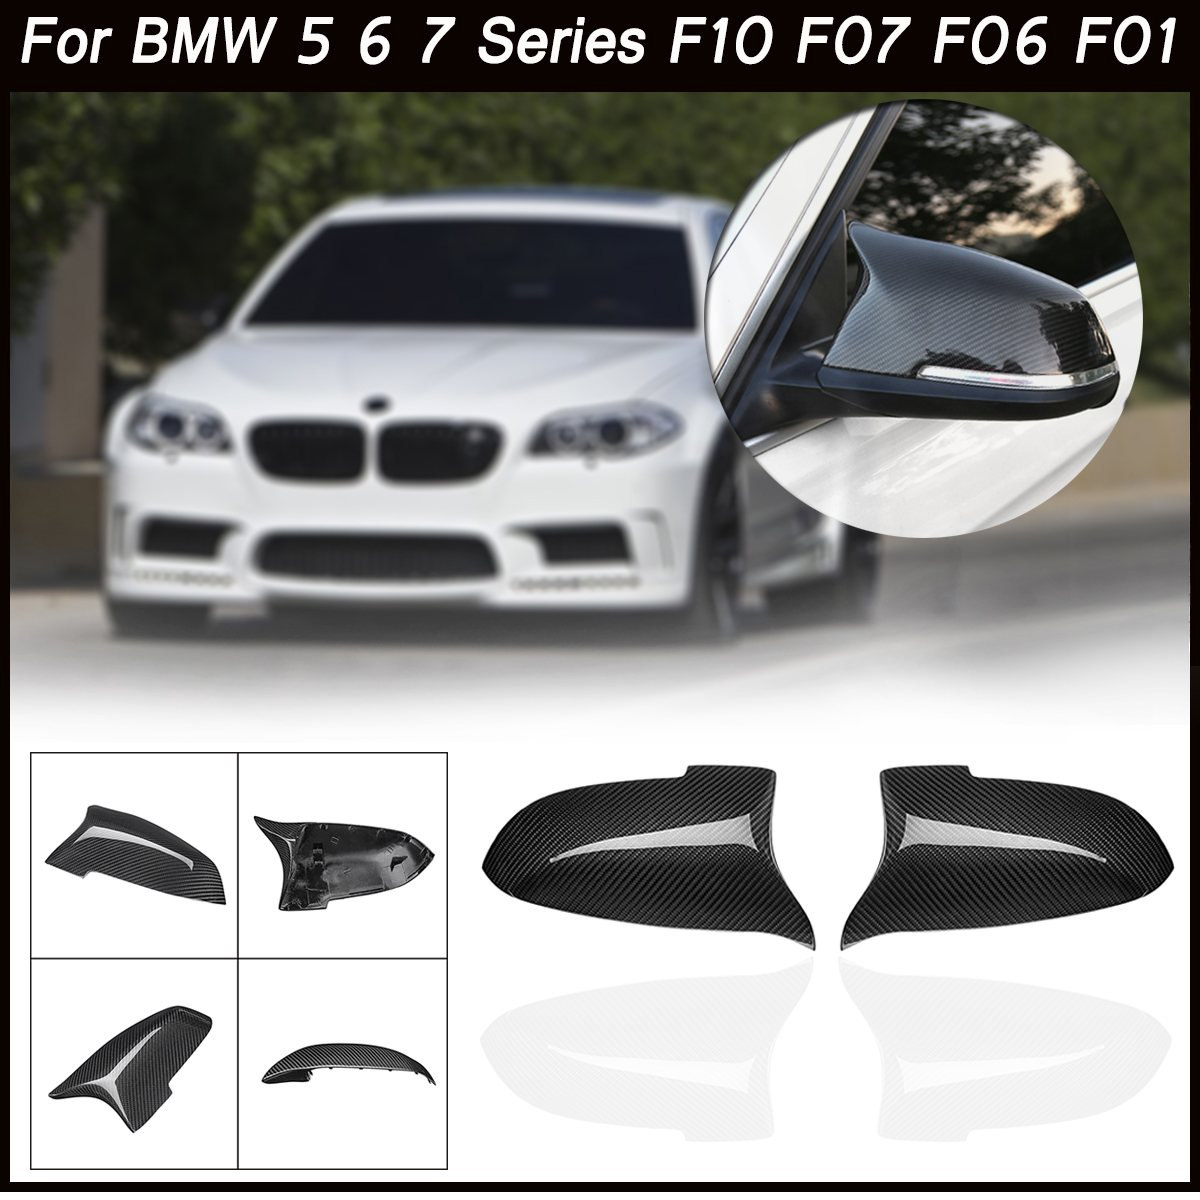 Cover Shell For BMW 5 6 7 Series F10 F07 F06 F01 Real Carbon Fiber Door Side Look Rear View Mirror Cover Replacement Caps